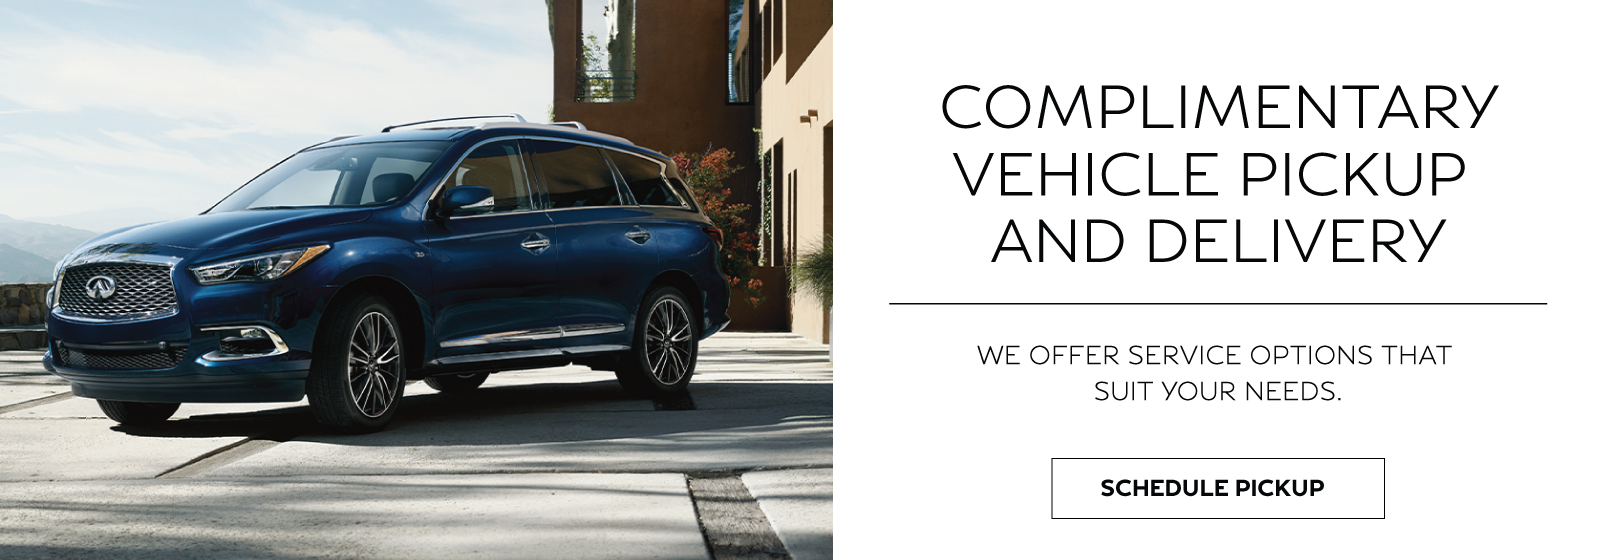 Complimentary vehicle pickup and delivery. We offer service options that suit your needs. Click to get started.